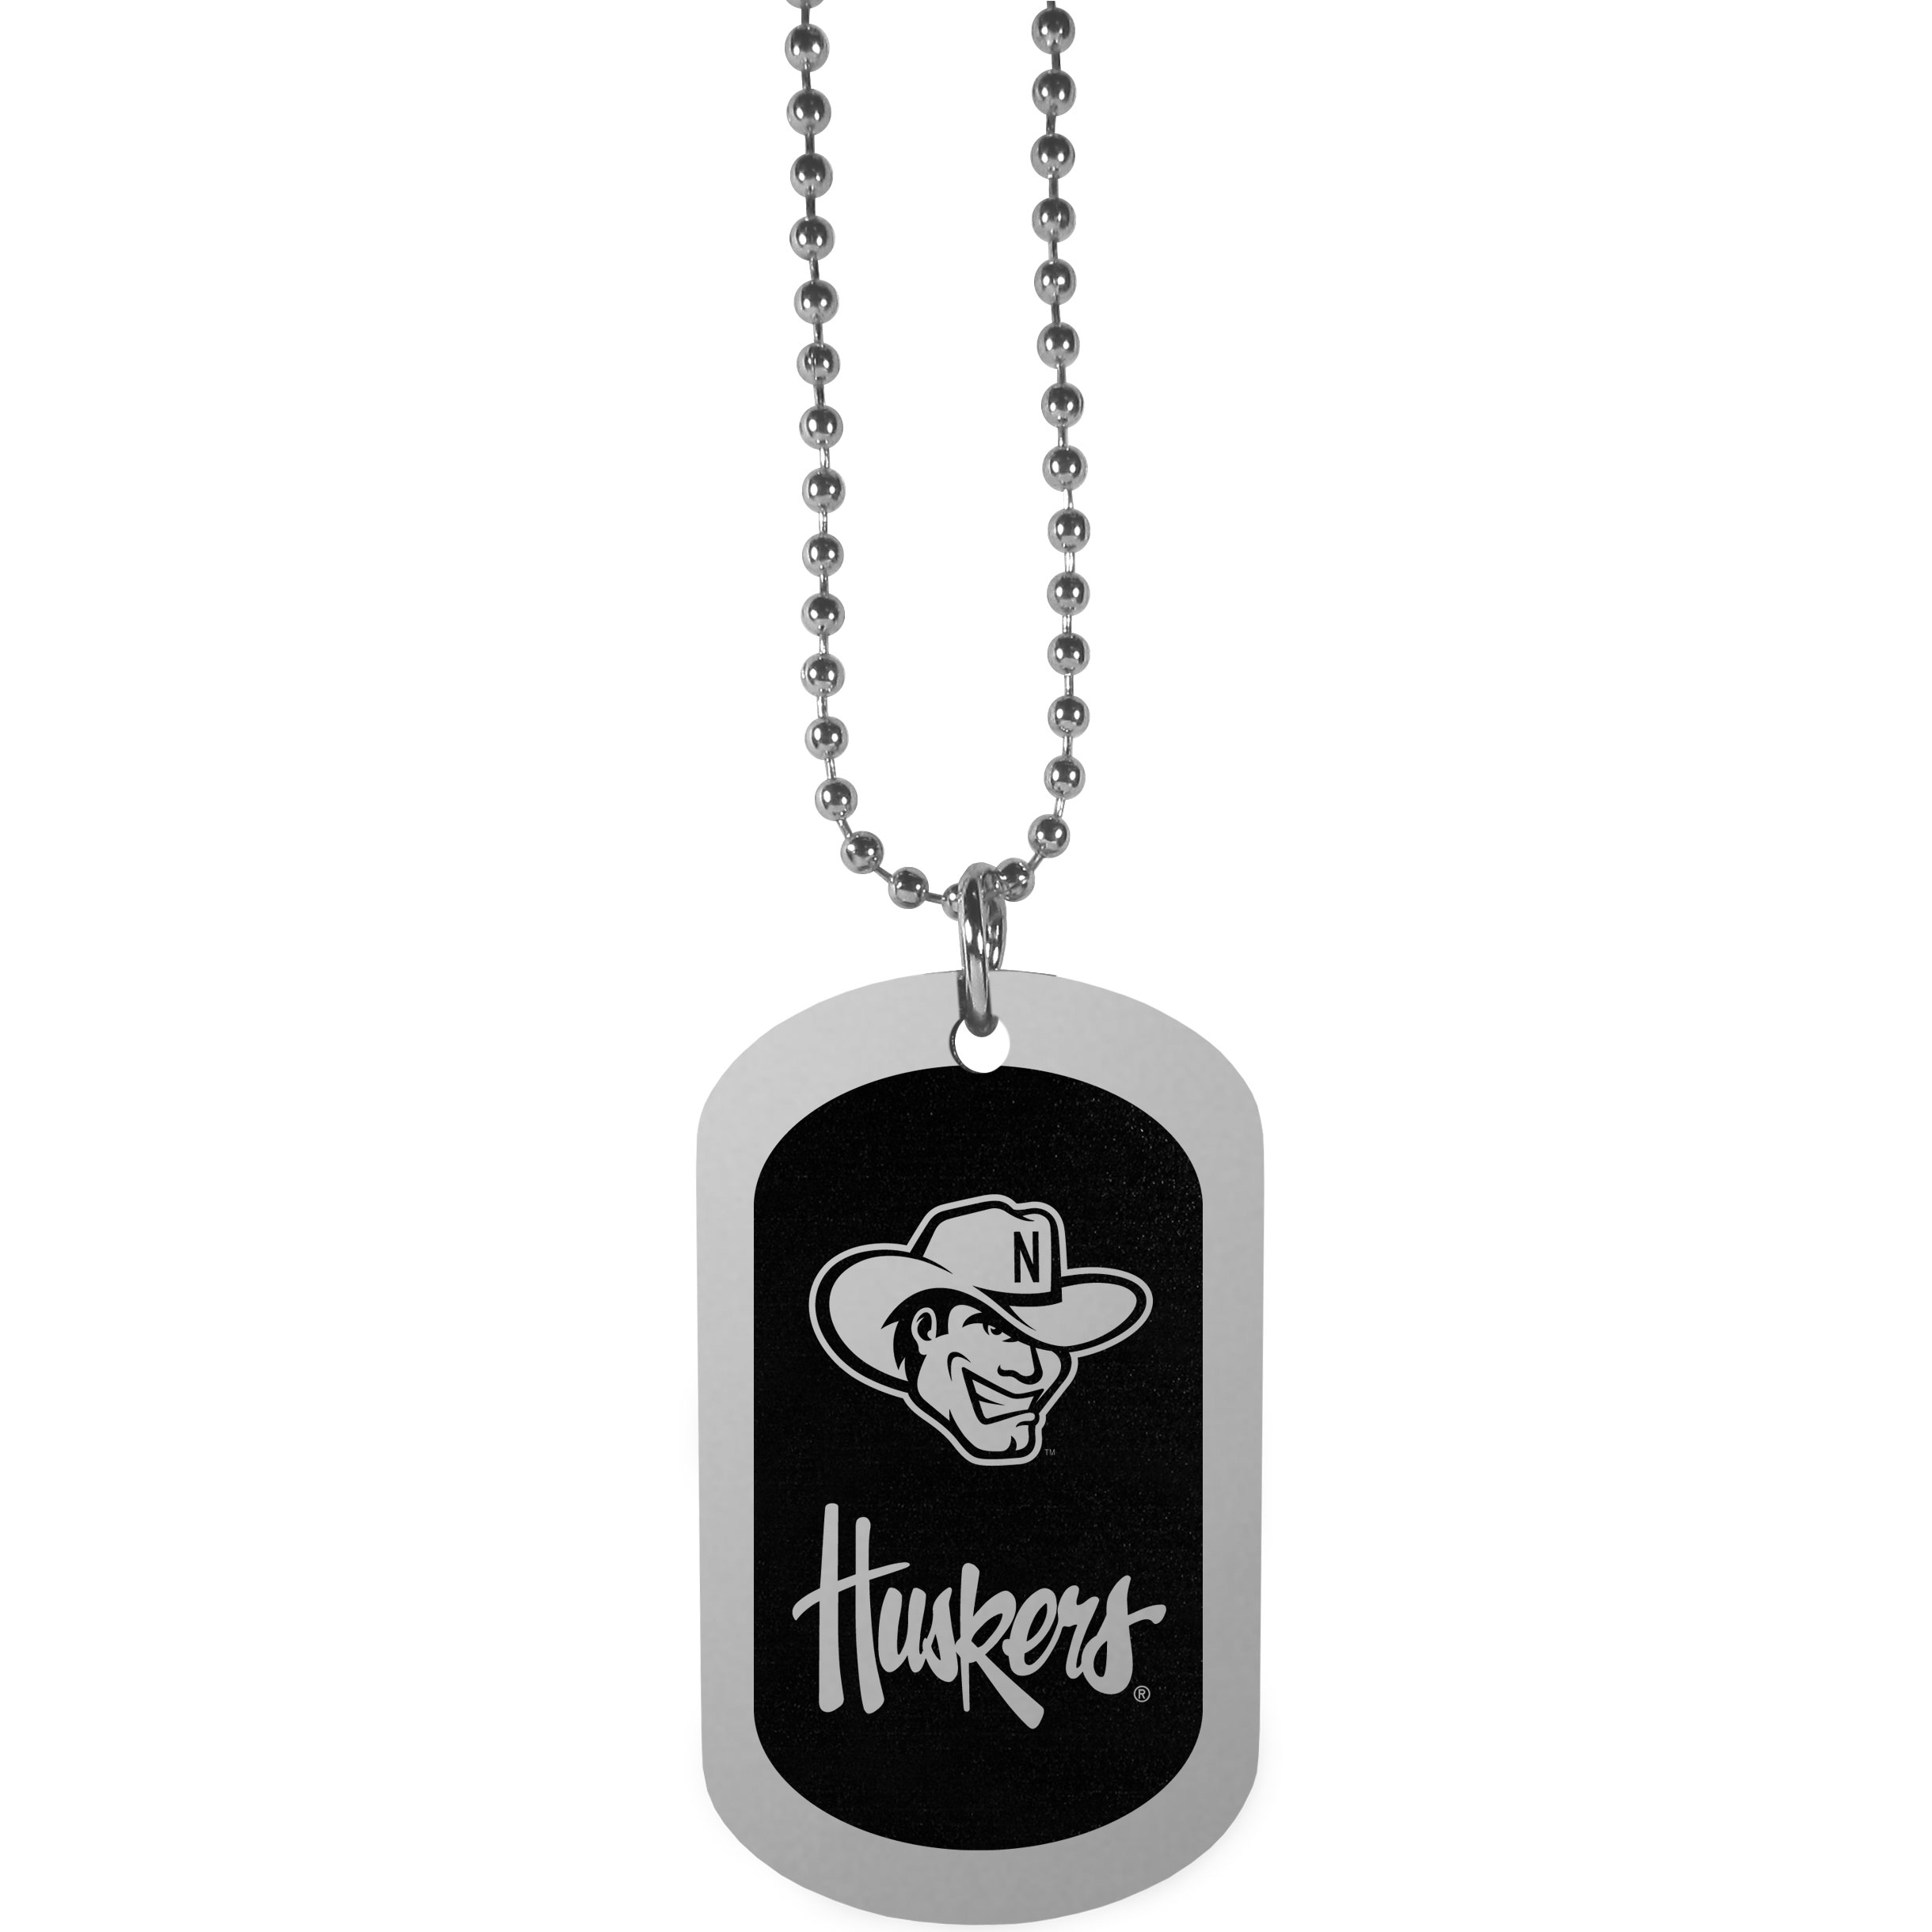 Nebraska Cornhuskers Chrome Tag Necklace - Dog tag necklaces are a fashion statement that is here to stay. The sporty version of the classic tag features a black printed over a high polish tag to create a bold and sporty look. The tag comes on a 26 inch ball chain with a ball and joint clasp. Any Nebraska Cornhuskers would be proud to wear this attractive fashion accessory.